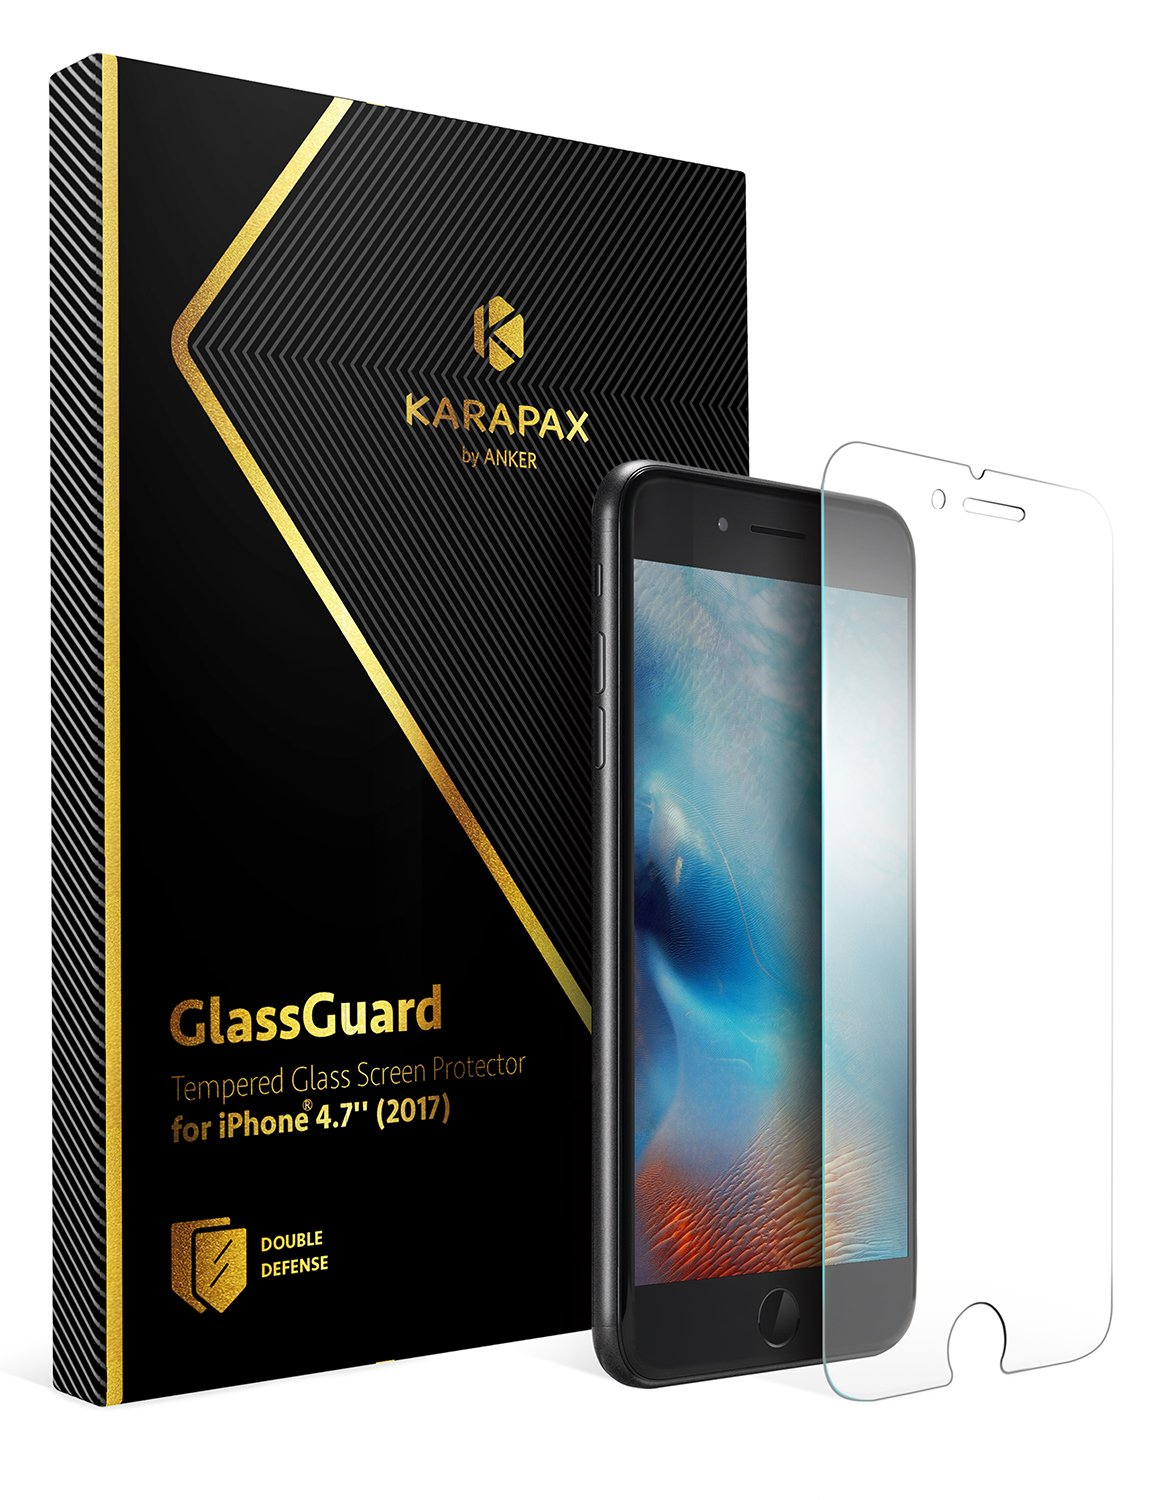 Anker KARAPAX GlassGuard(iPhone 8 / 7)